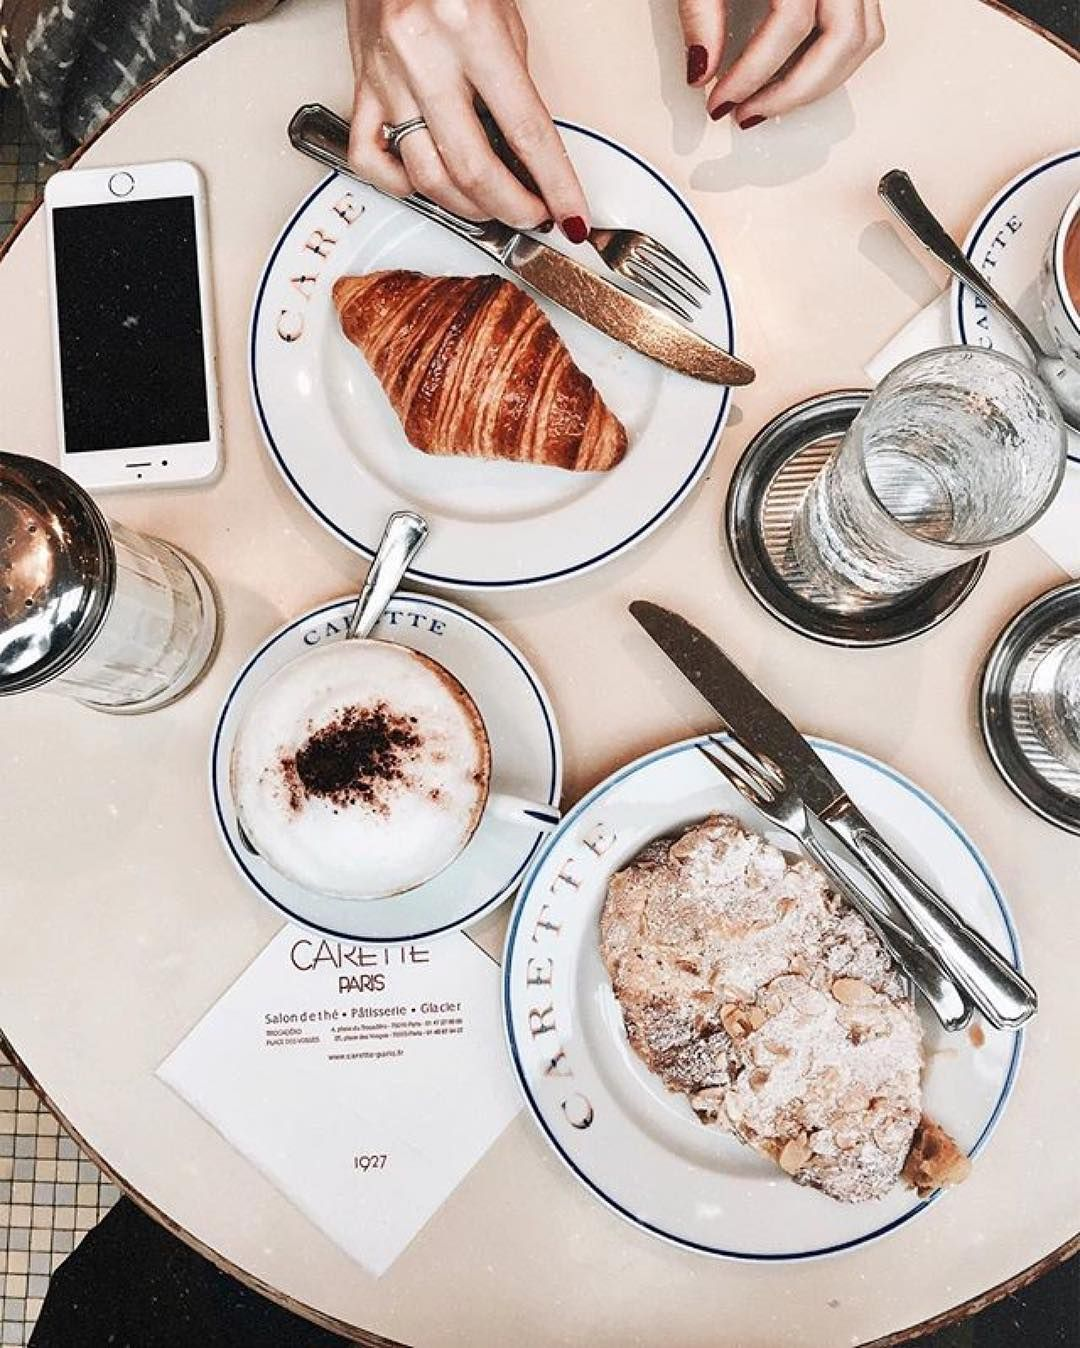 Croissants are my favourite! What are yours? : @paris.with.me #GetCoffeeBeHappy